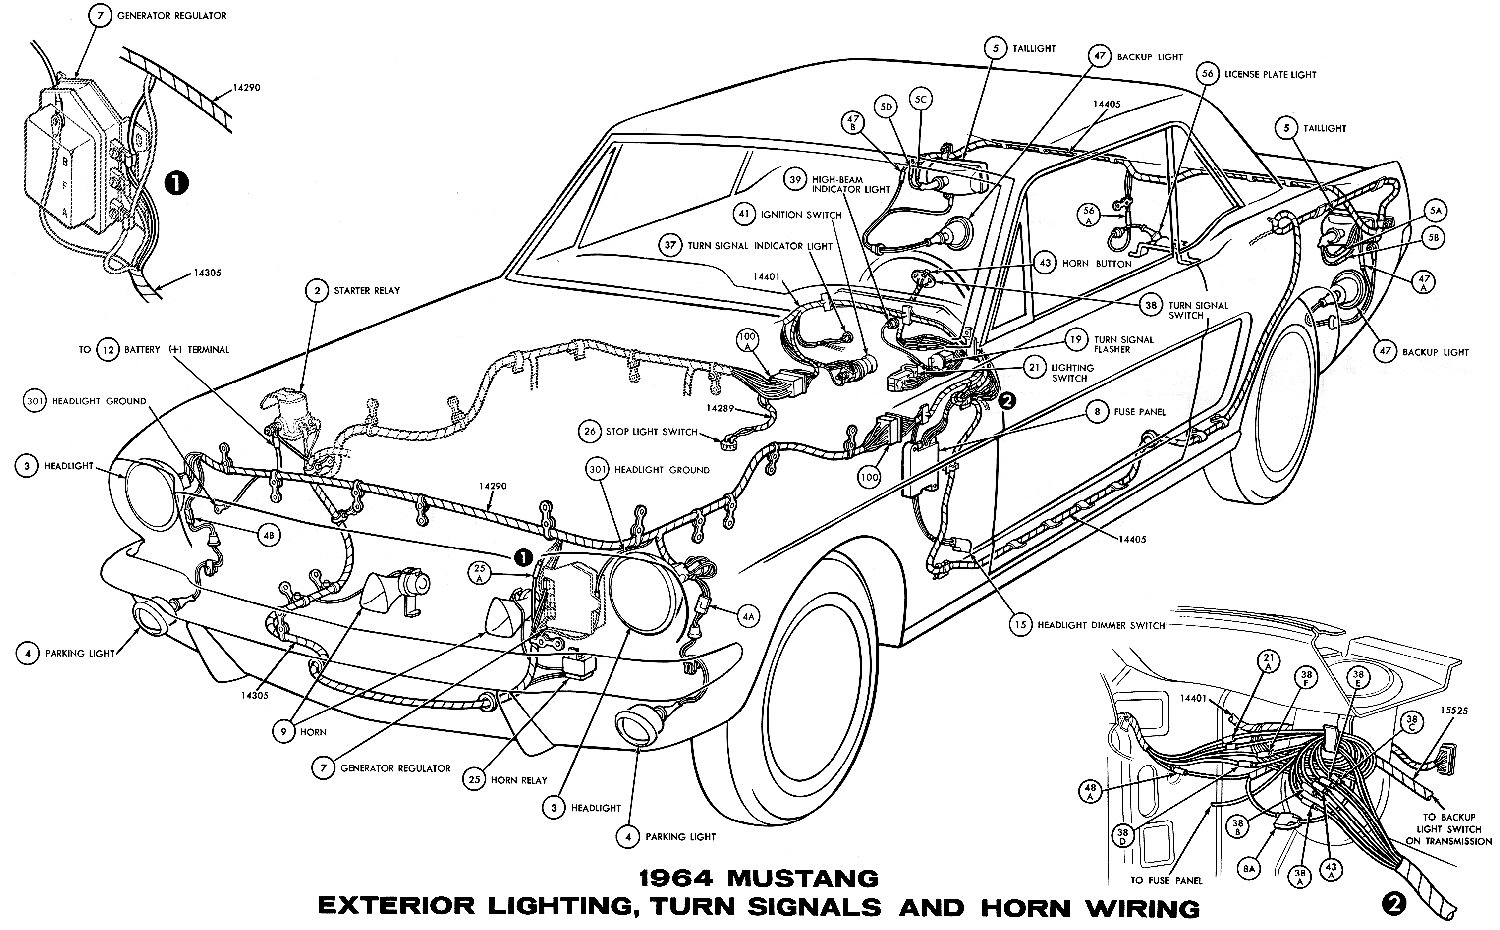 64 Ford Mustang Headlight Switch Wiring Diagram Library Further 1967 Sm1964h 1964 Exterior Lighting Turn Signals And Horns Pictorial Or Schematic